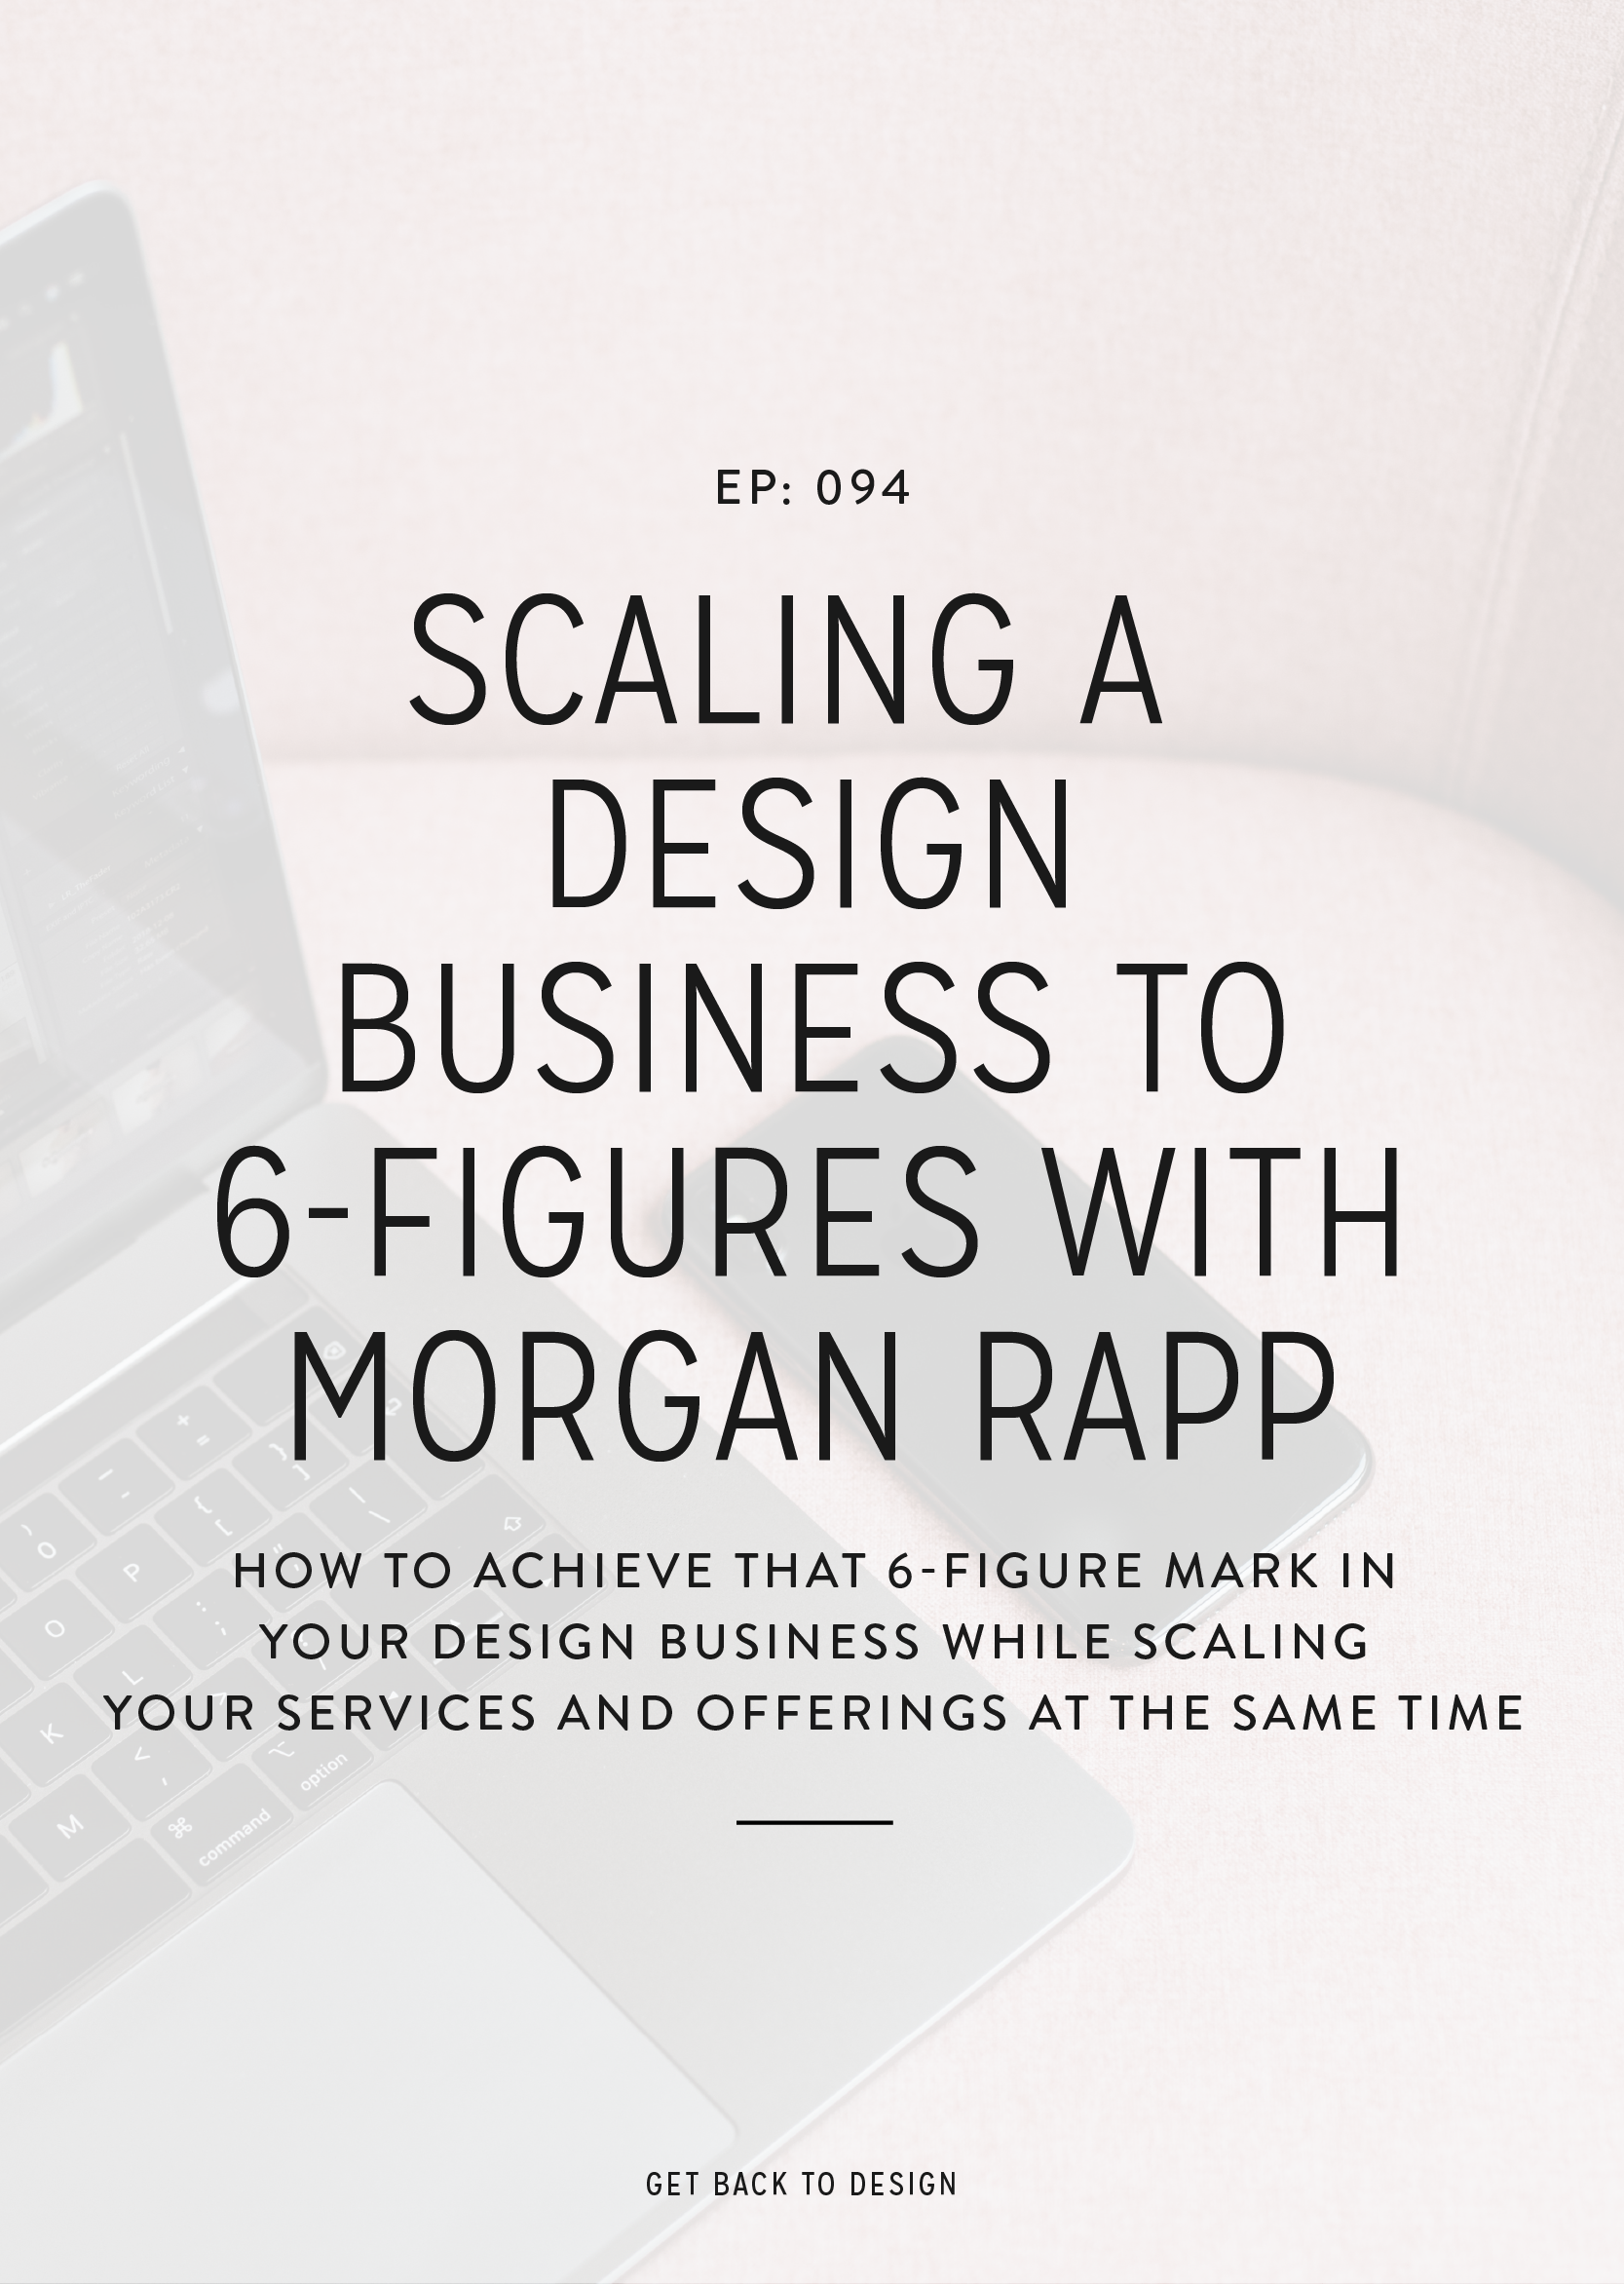 Today we are chatting with Morgan Rapp about getting your design business to 6-figures all while scaling at the same time.